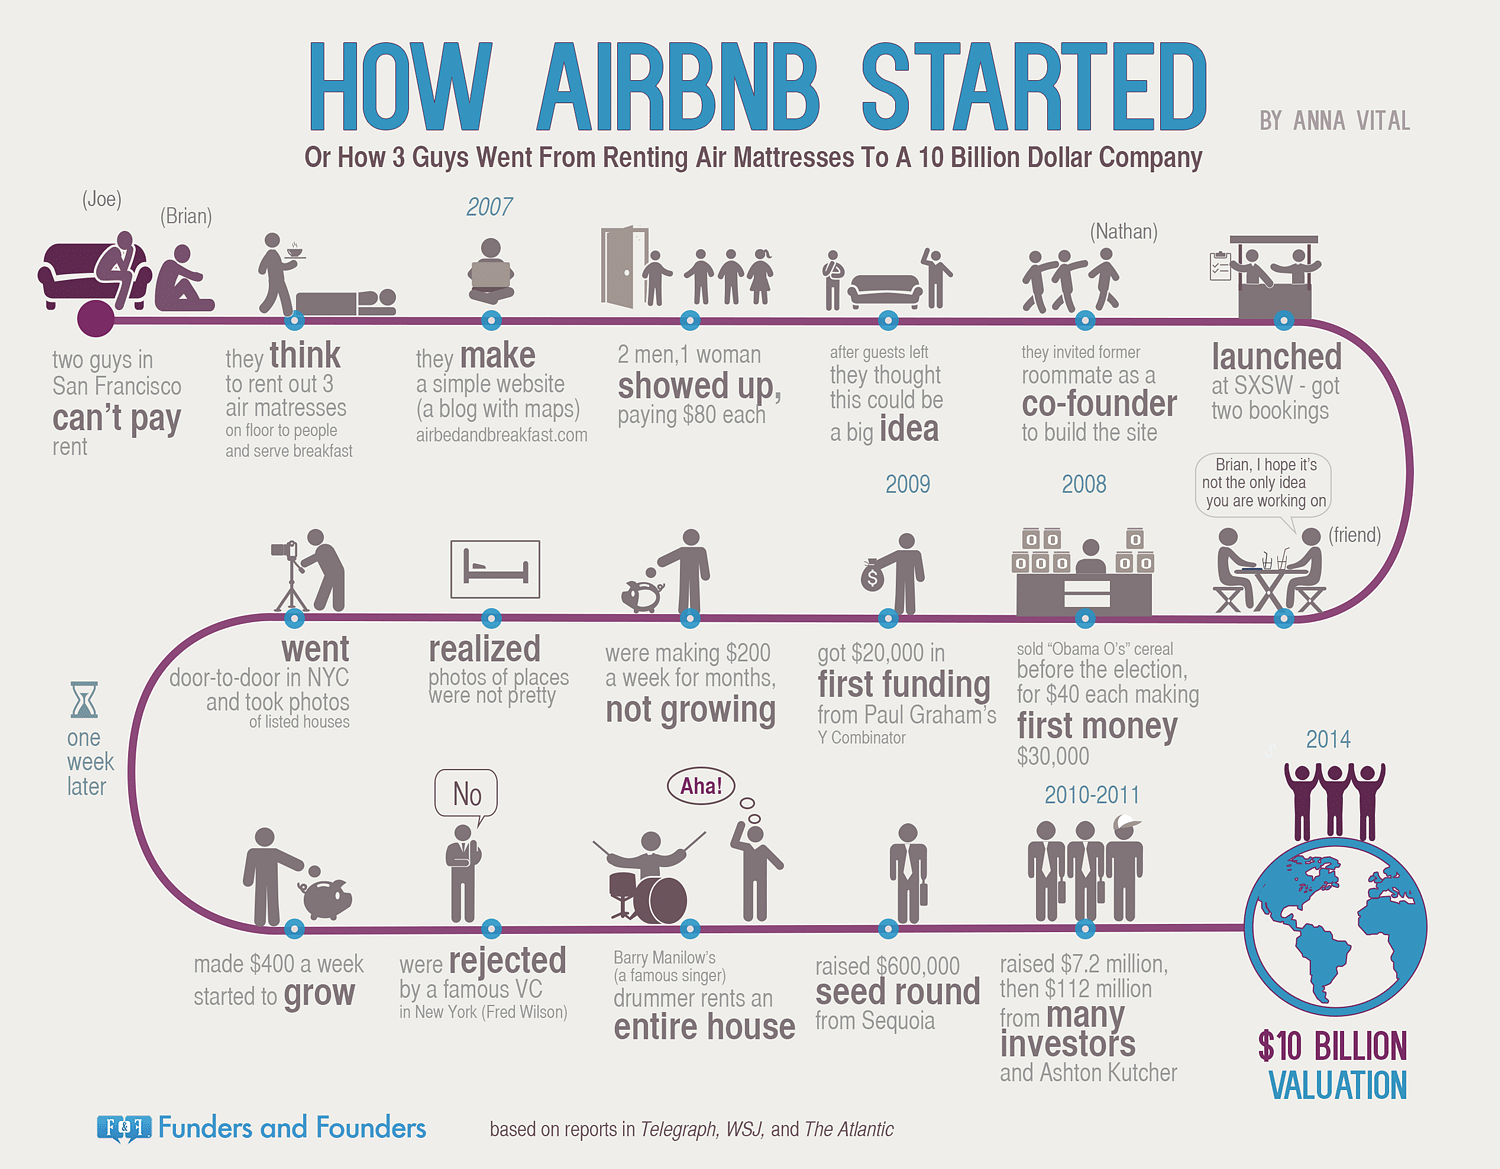 What Is Happening At Airbnb India